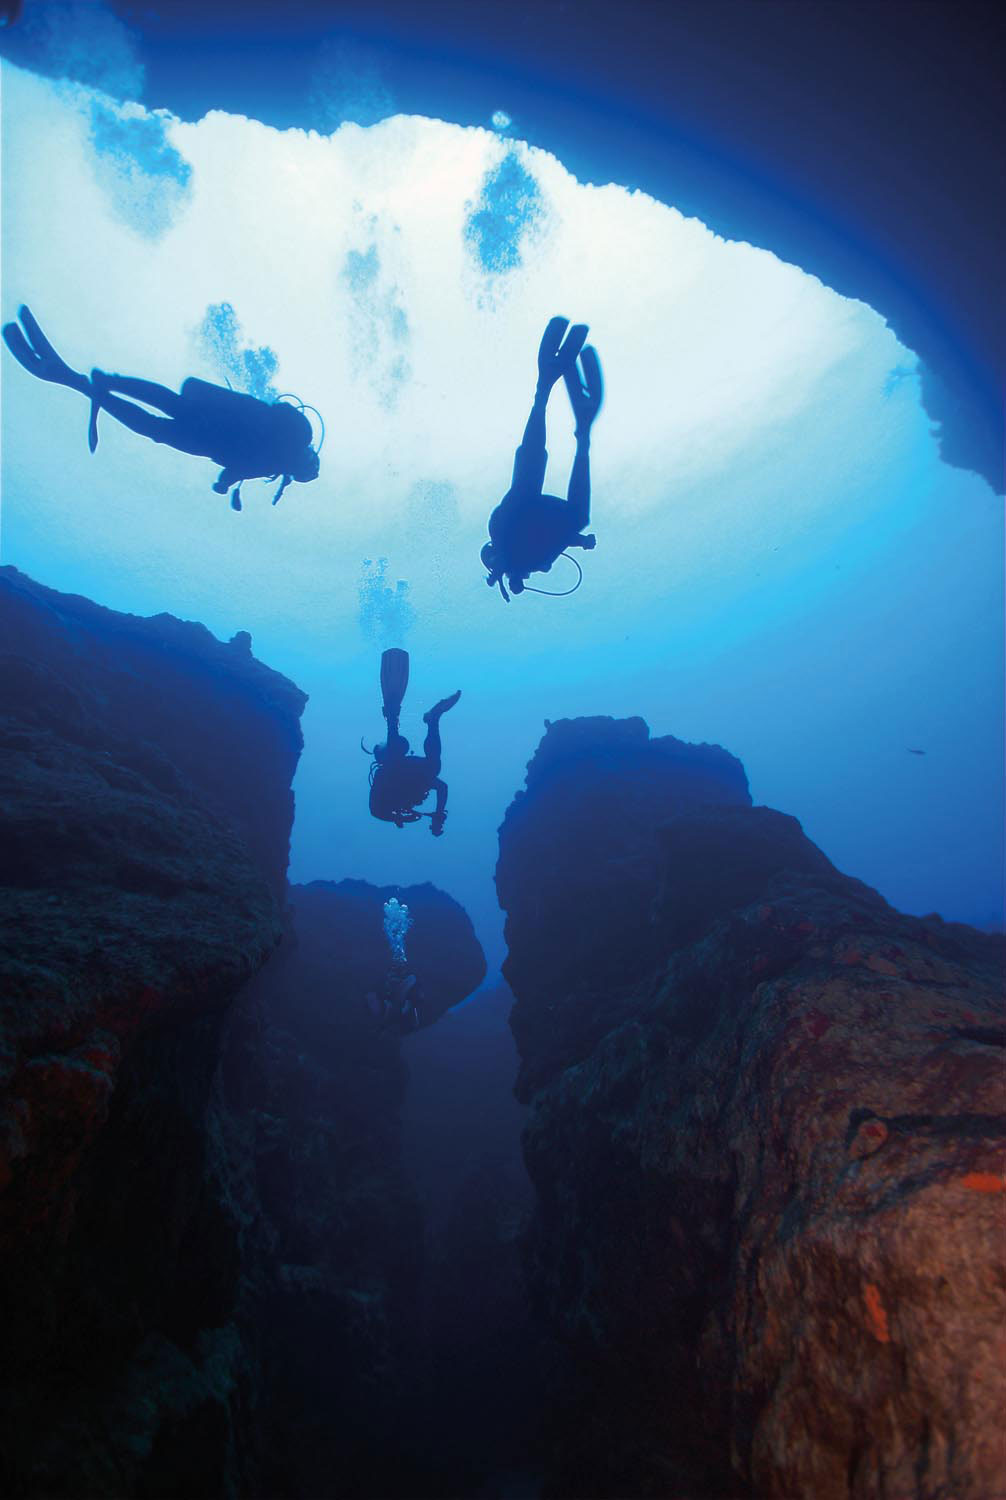 Exploring the deeper reaches of one of the blue holes by scuba. Charles Stirling (Diving)/Alamy Stock Photo